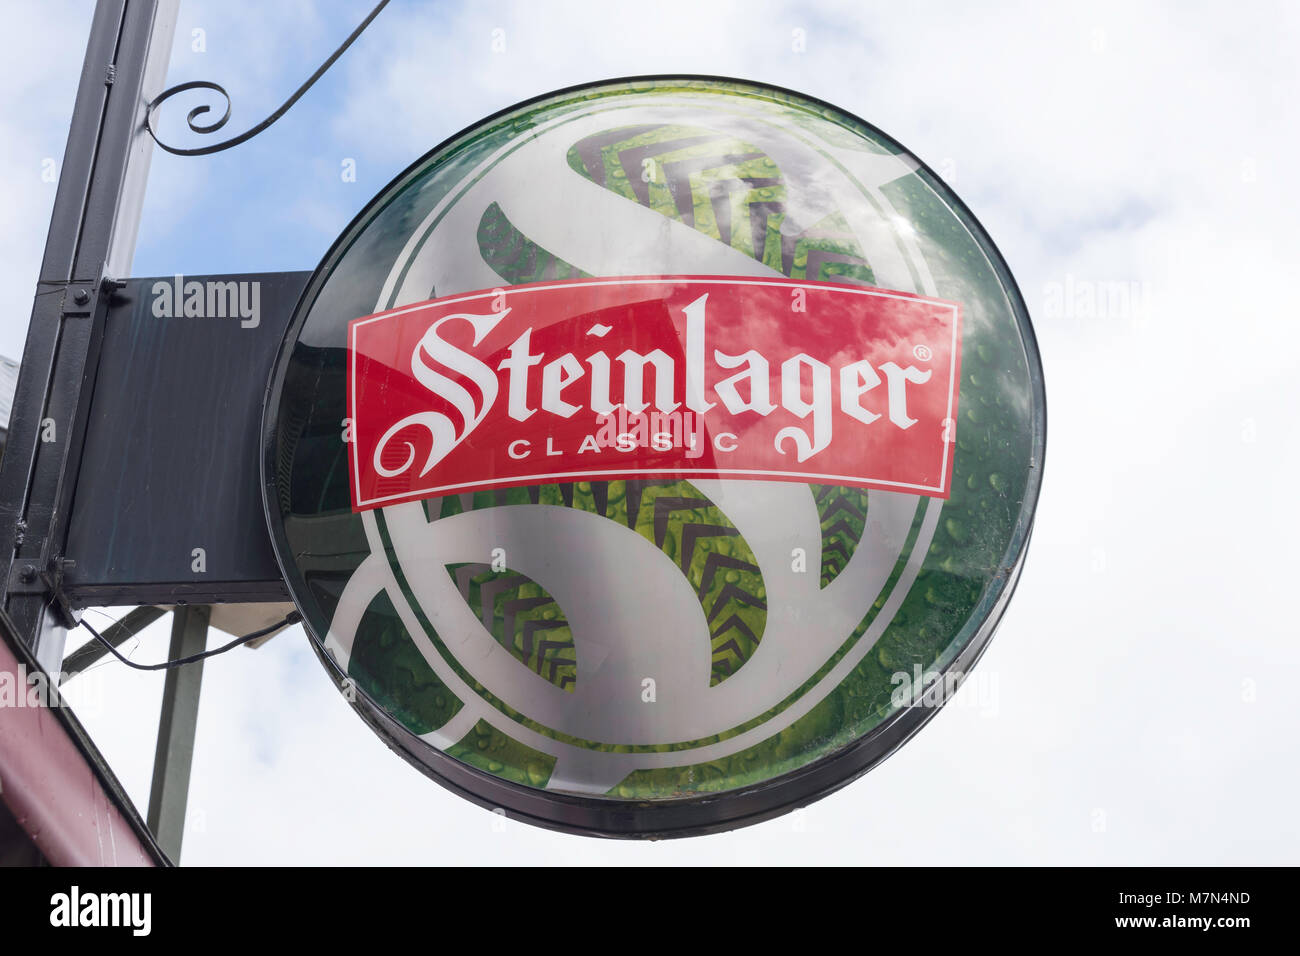 New Zealand's Classic Steinlager Beer neon sign, Rue Lavaud, Akaroa, Banks Peninsula, Canterbury Region, New - Stock Image